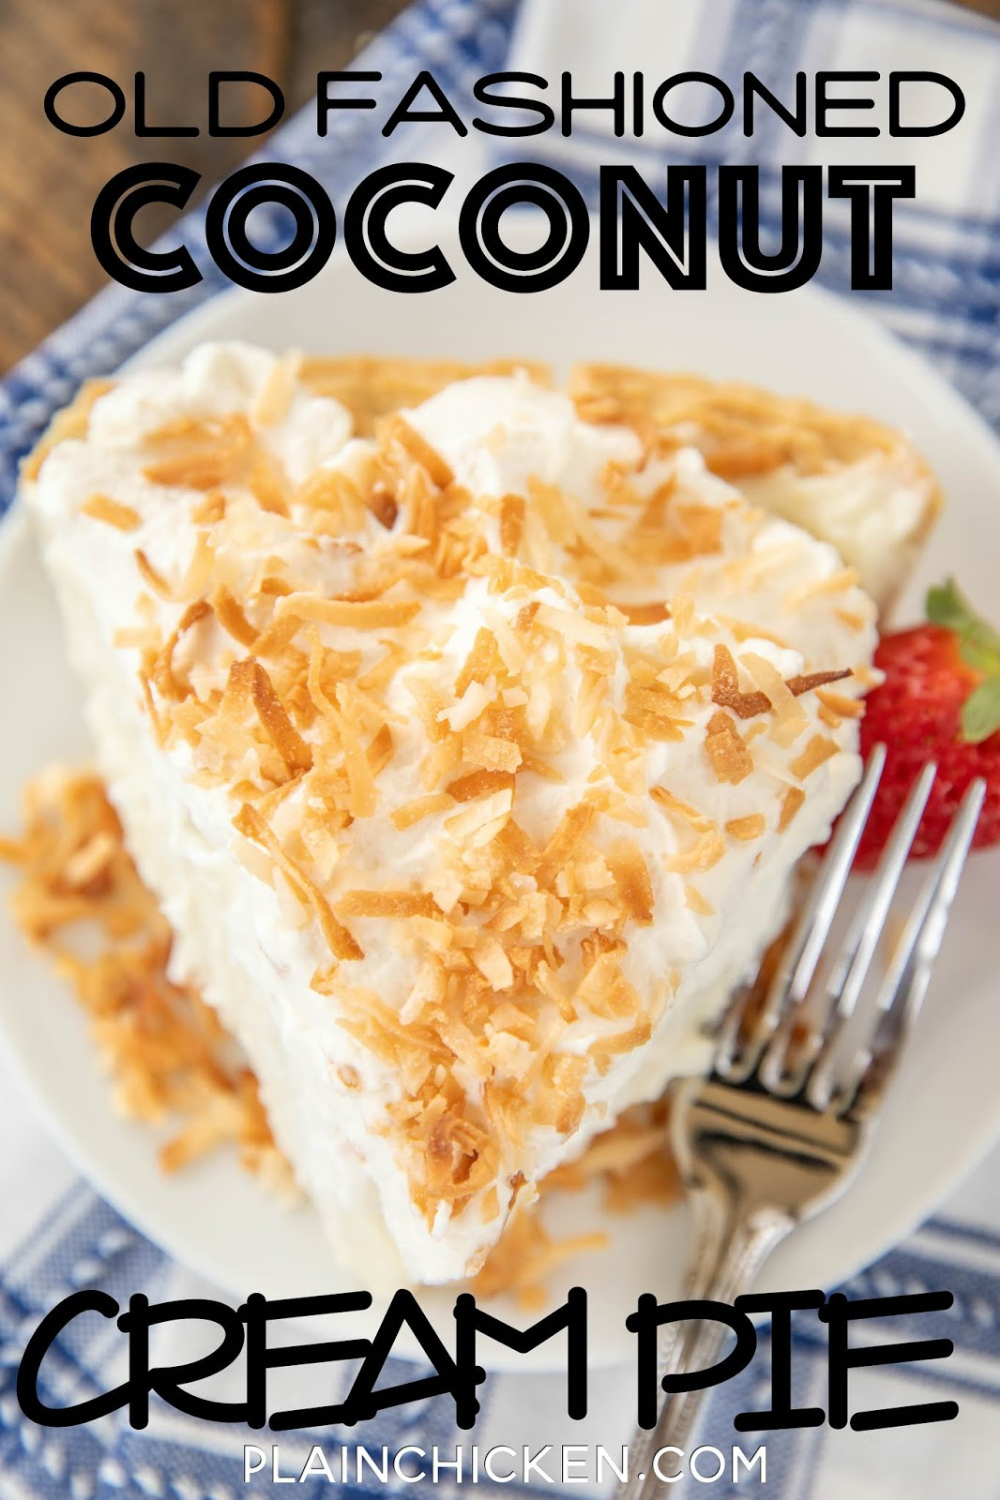 Old Fashioned Coconut Cream Pie Perfect Ending To Any Meal T Is Hands Down The Best Cocon Coconut Cream Pie Recipes Coconut Cream Pie Best Coconut Cream Pie